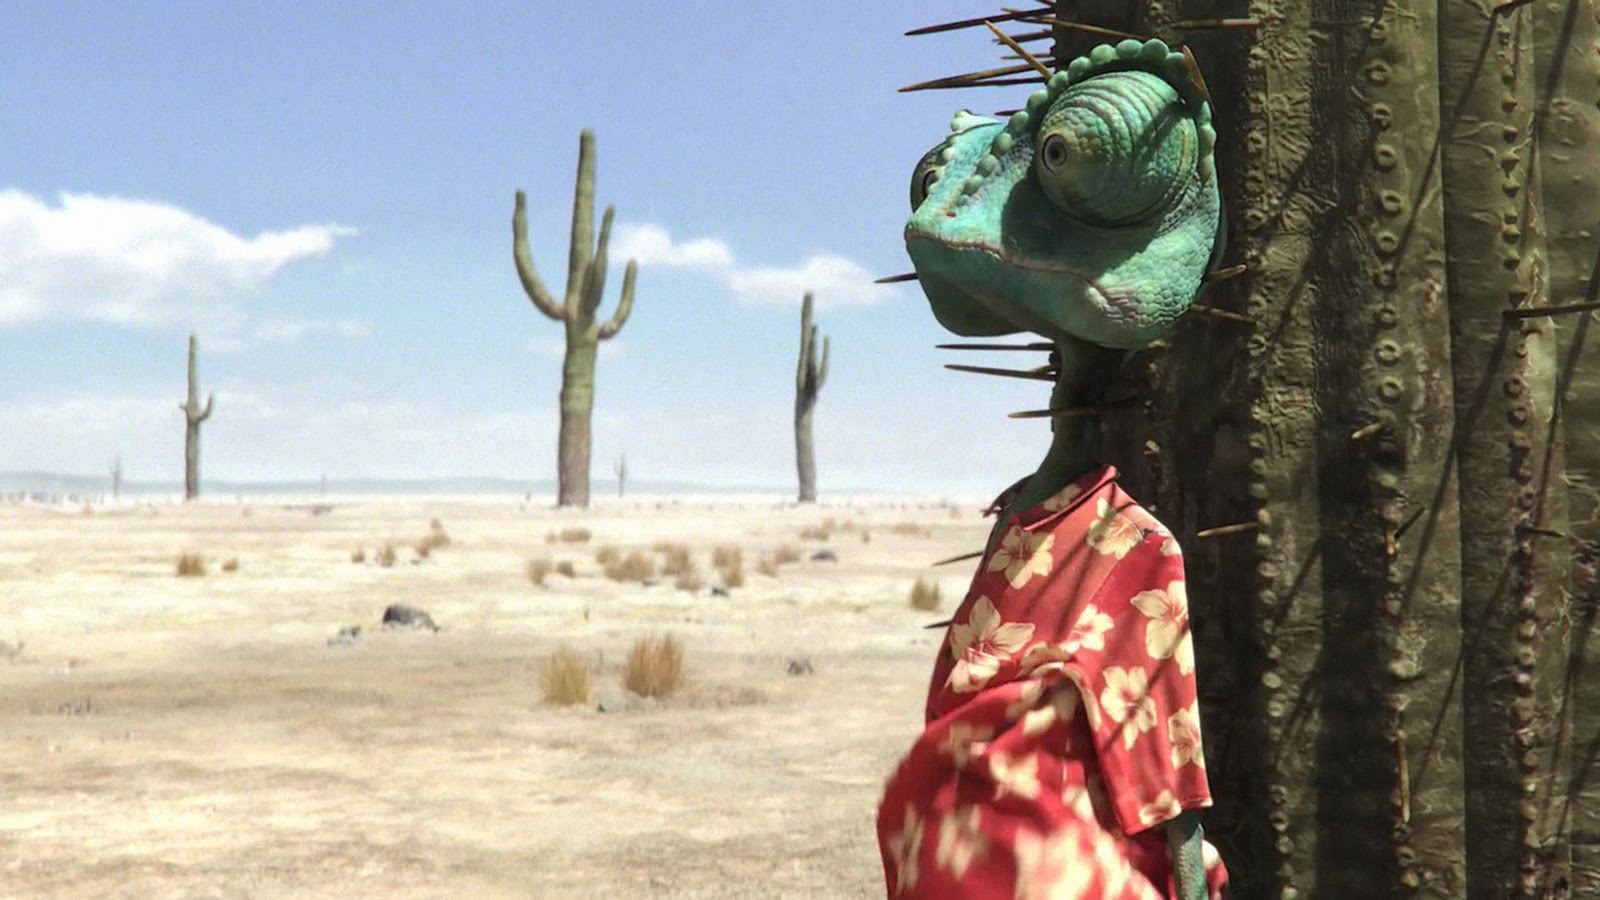 http://3.bp.blogspot.com/-ll93QsZHJVc/Tn1YRyLYpCI/AAAAAAAAFpQ/K71mD84quSQ/s1600/Rango+movie+johnny+depp+lizard+desert.jpg